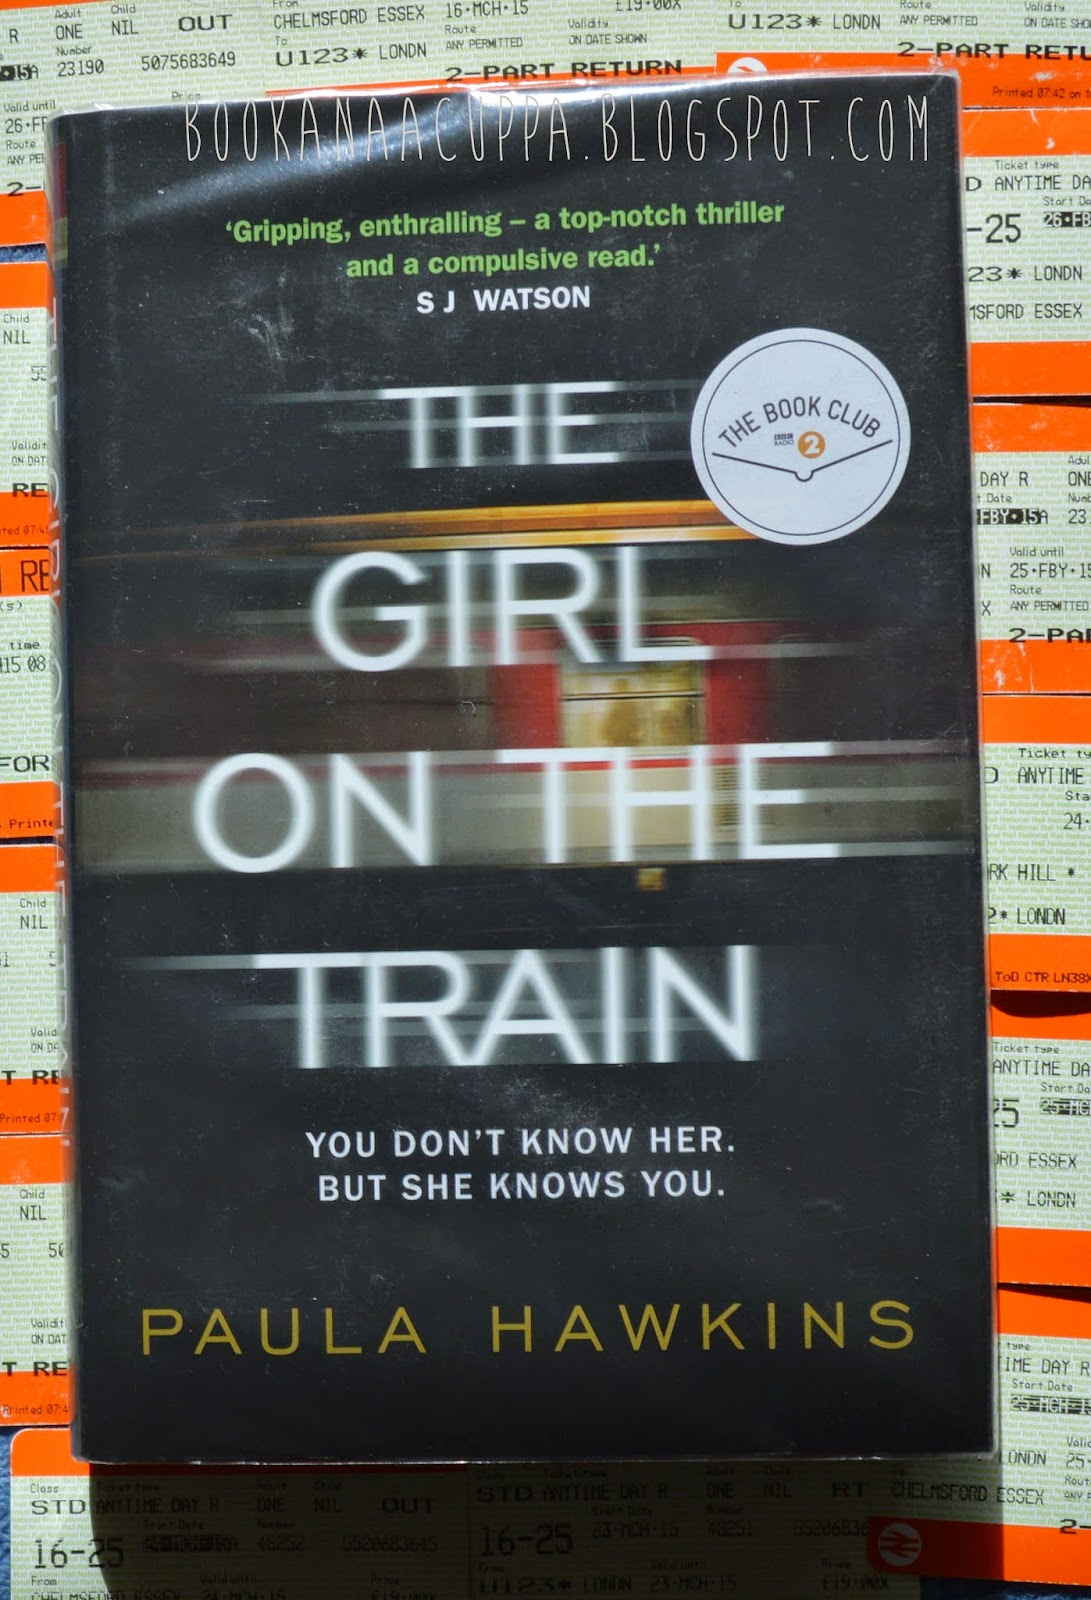 Paula Hawkins, blog, The Girl on the Train, review, book review, front cover, photo, picture, thriller, must read, phenomenon